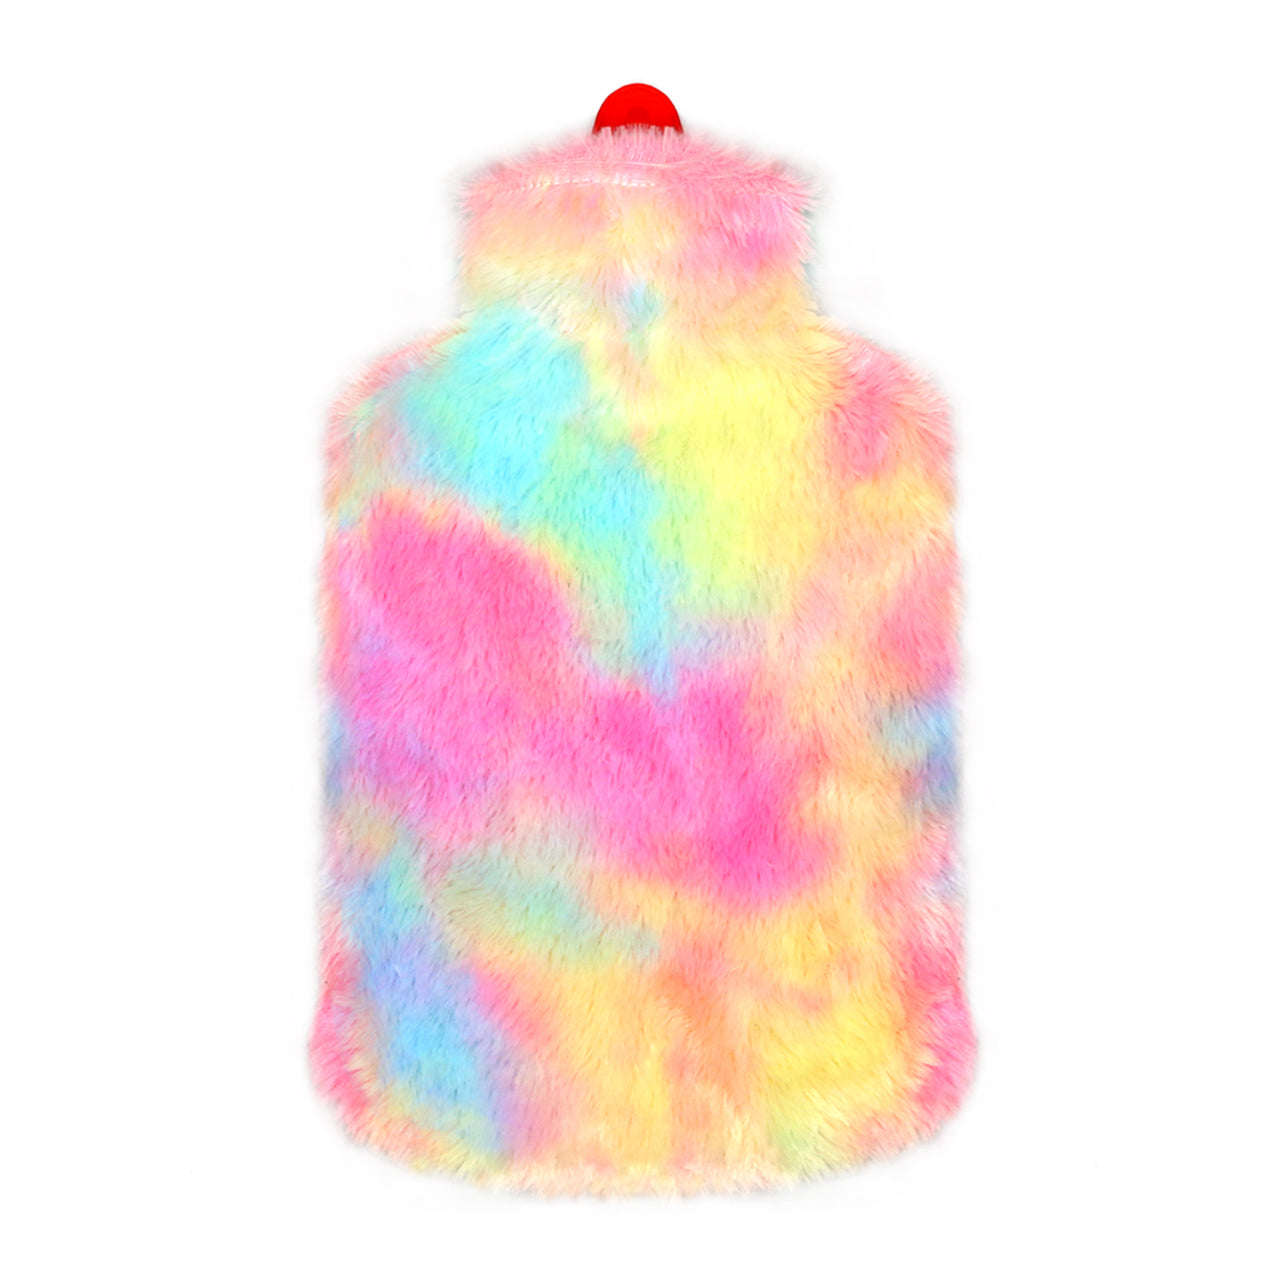 Hot Water Bottle & Cover - Unicorn Plush - The Grain Shop Online Store